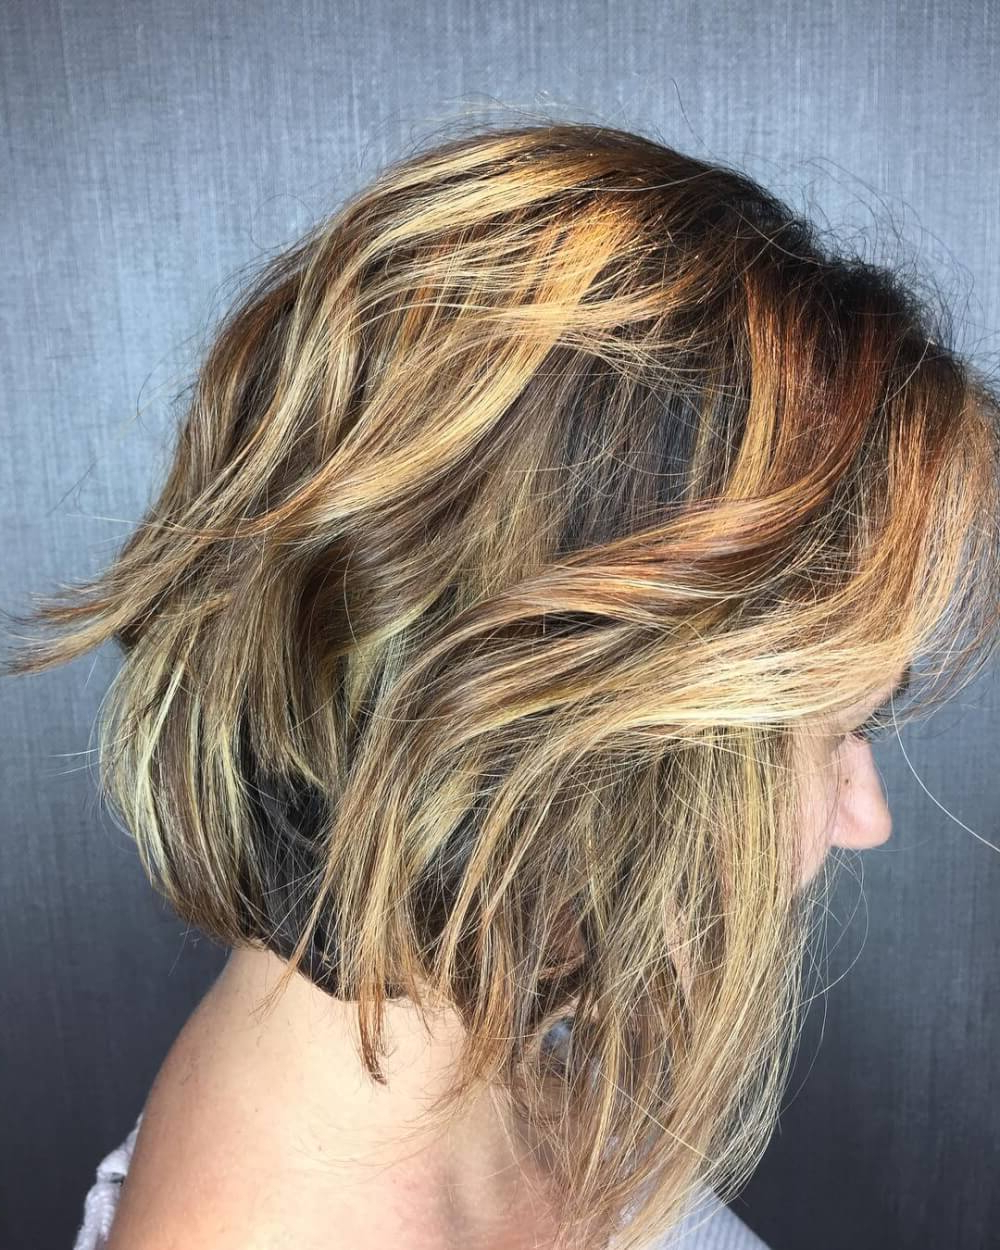 50 Chic Short Bob Haircuts & Hairstyles For Women In 2020 Inside Most Popular Short Cappuccino Bob Hairstyles (View 6 of 20)